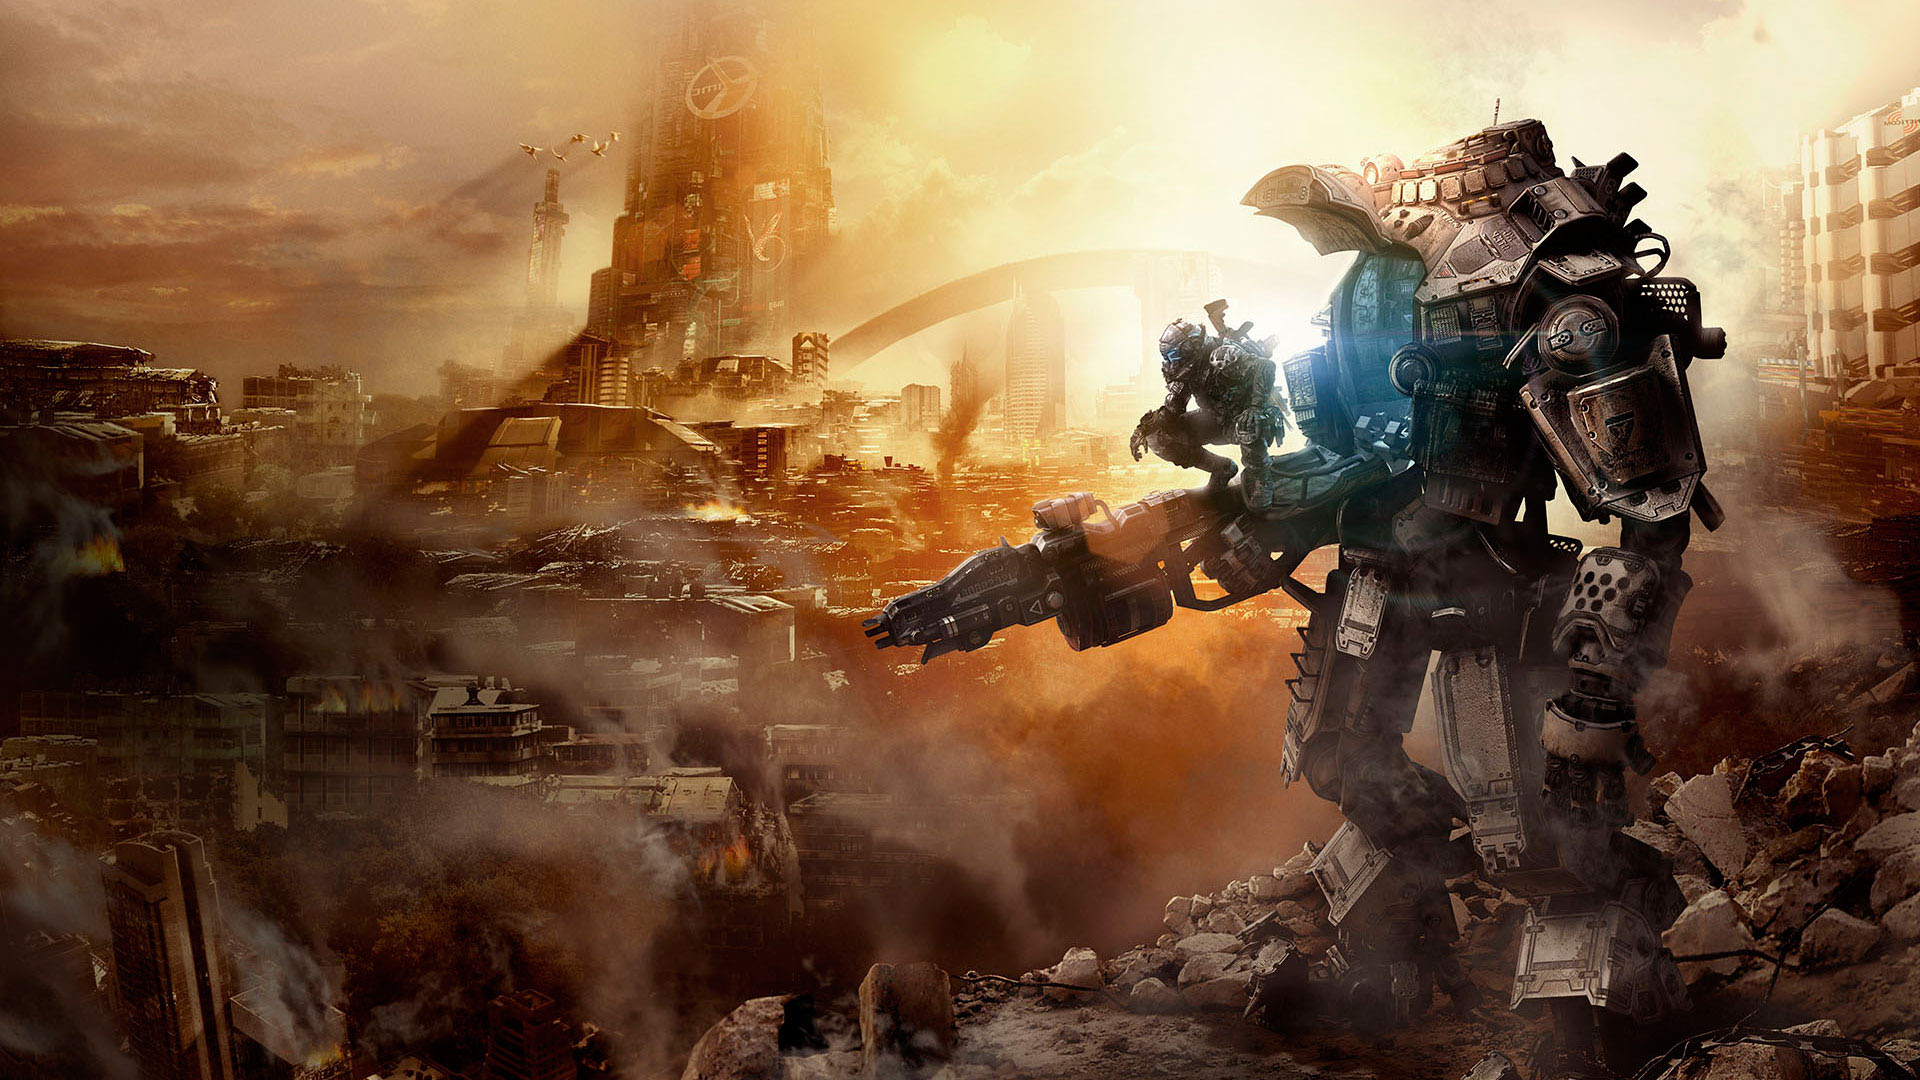 Download Titanfall Pilot Wallpaper Terrordesignerscom